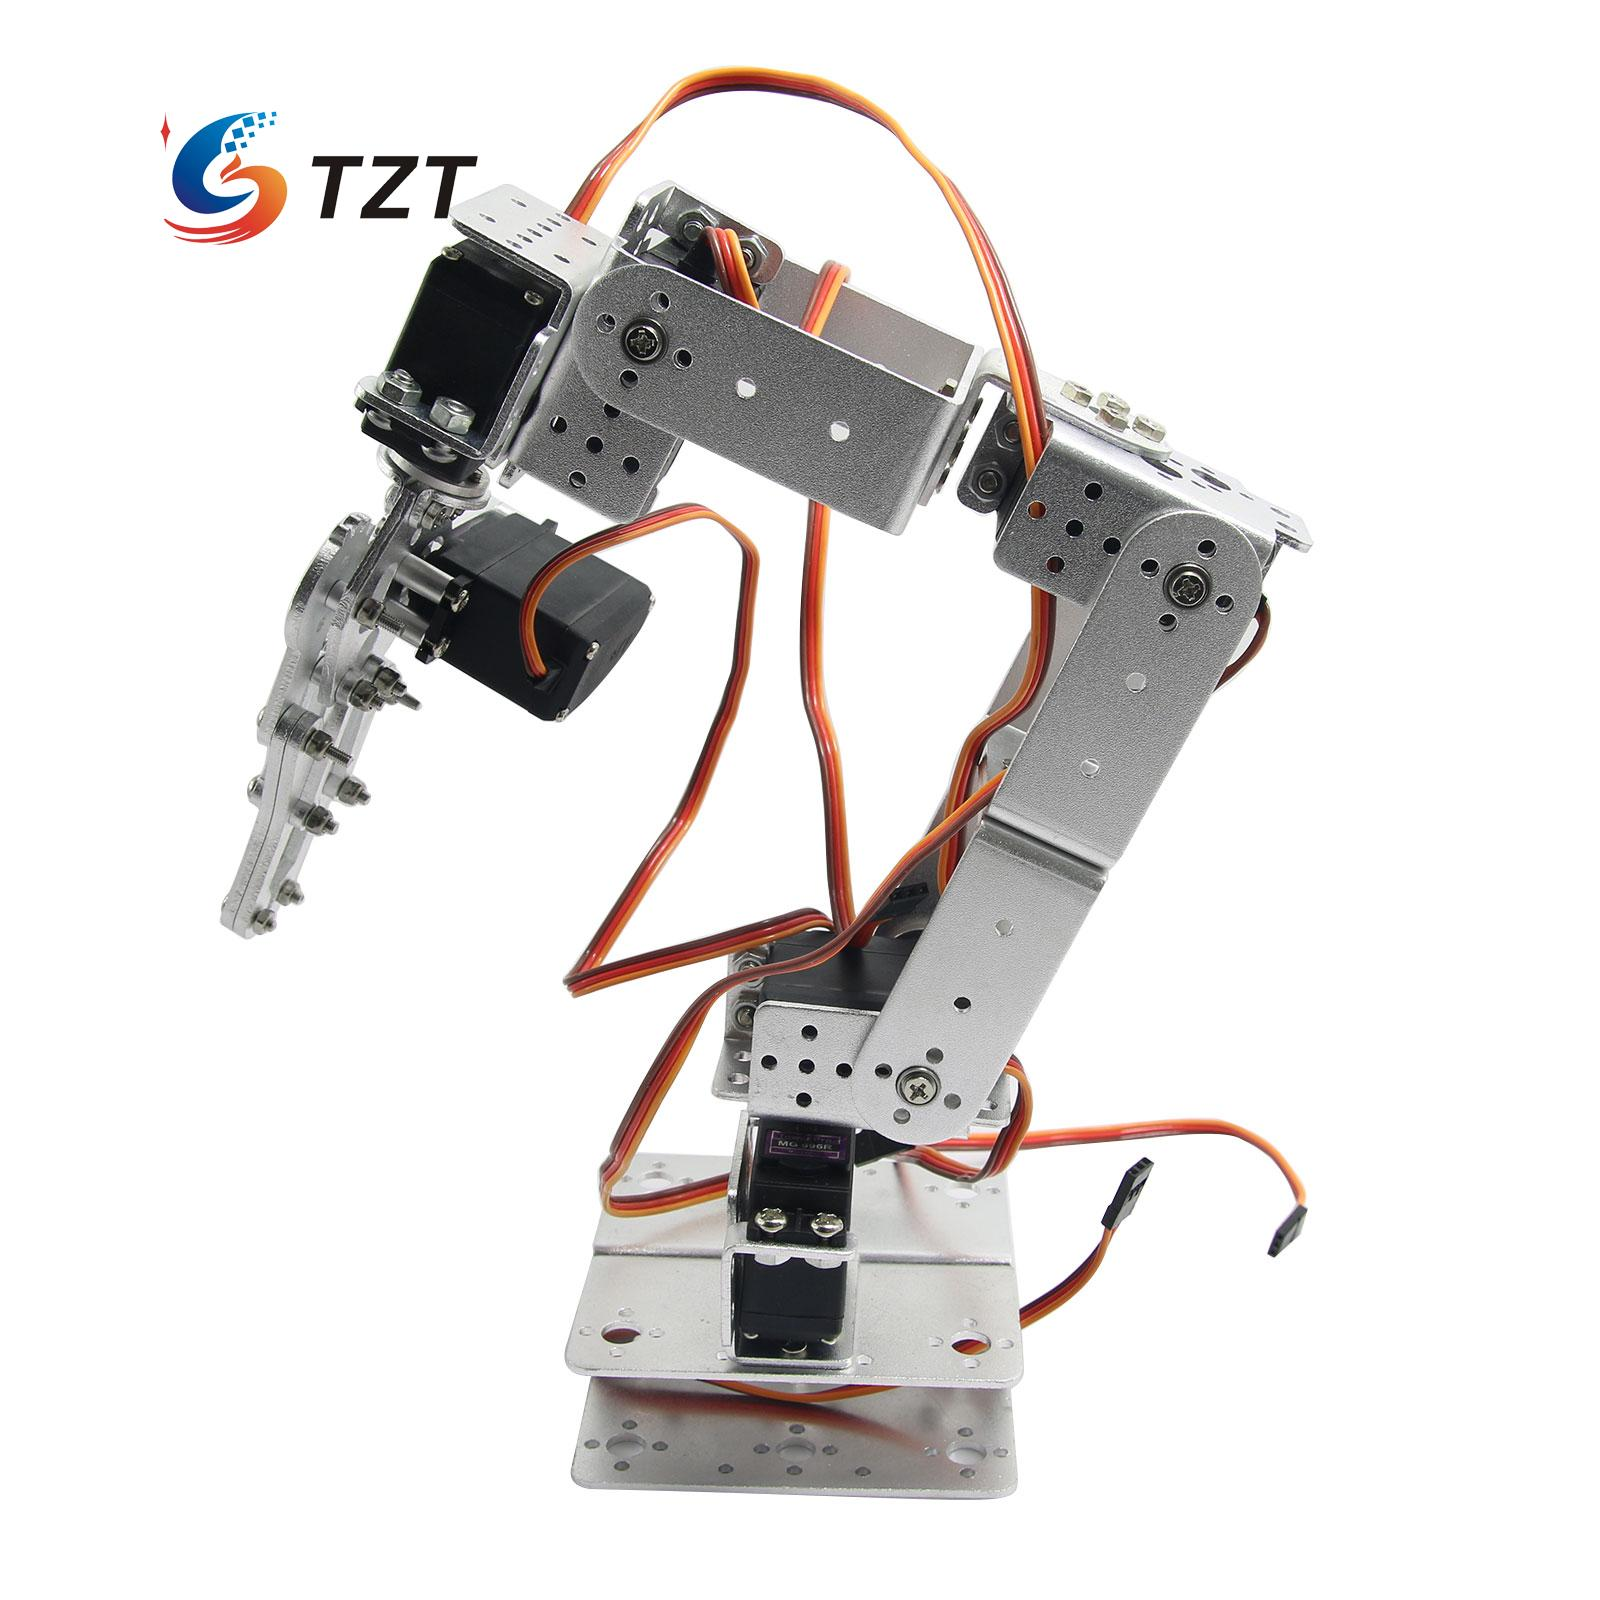 Aluminium Robot 6 DOF Arm Mechanical Robotic Arm Clamp Claw Mount Kit w Servos Servo Horn